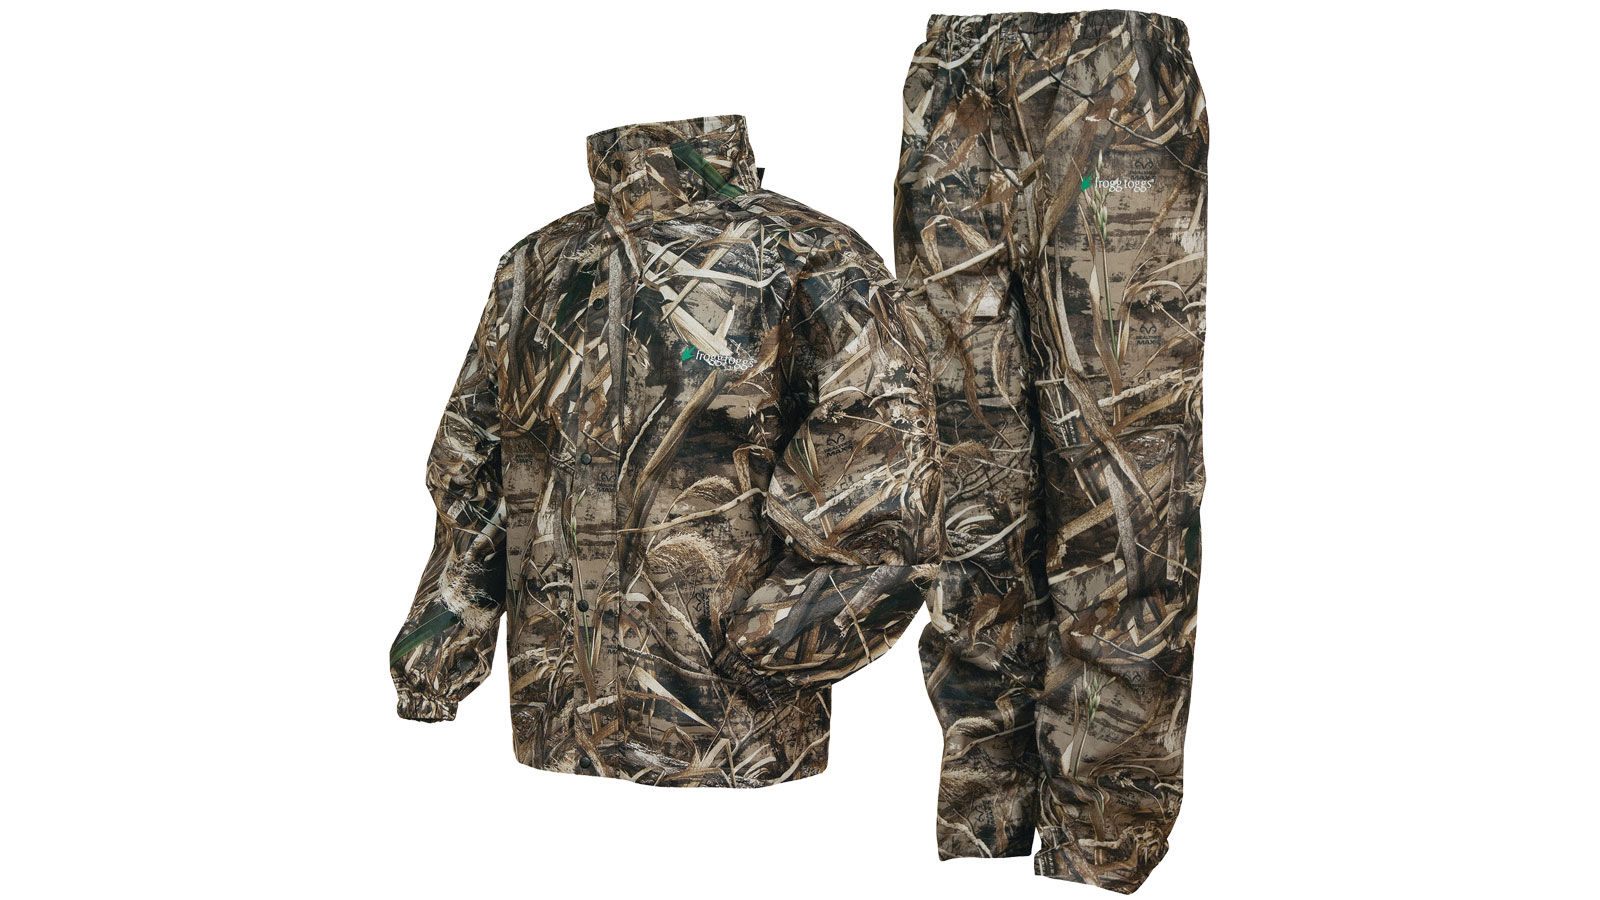 Frogg Toggs All Sports Camo Suit Max 5 Camo XX-Large